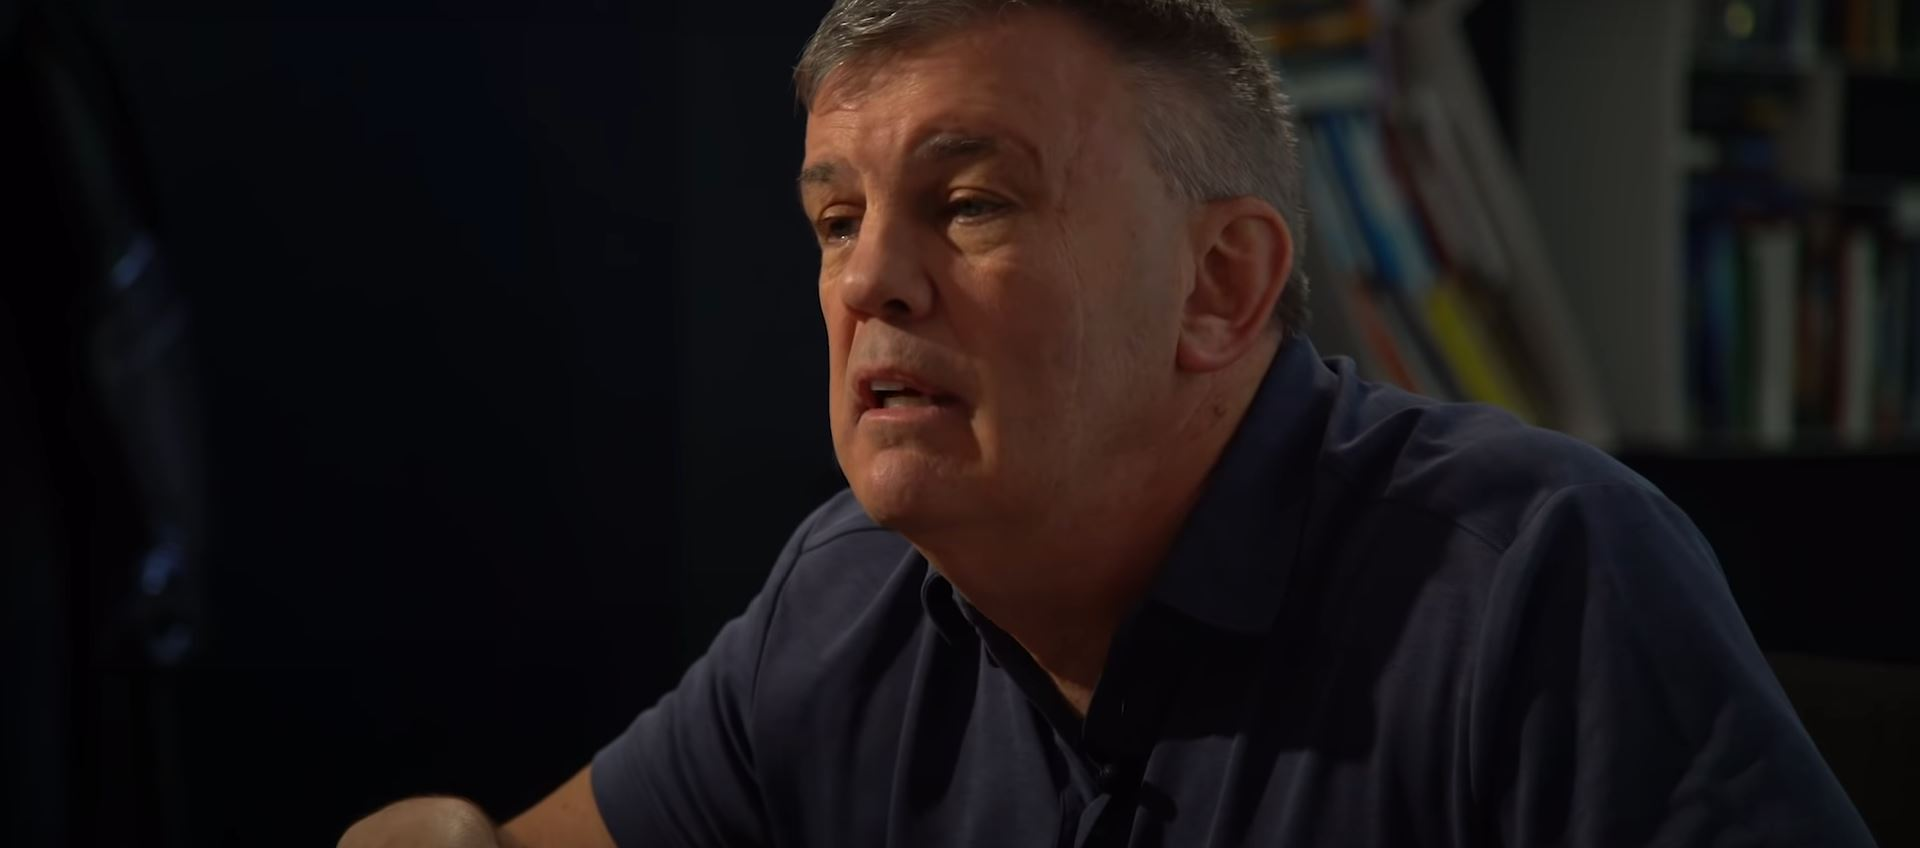 Teddy Atlas Reaction To Manny Pacquiao News Most Spot On Of All